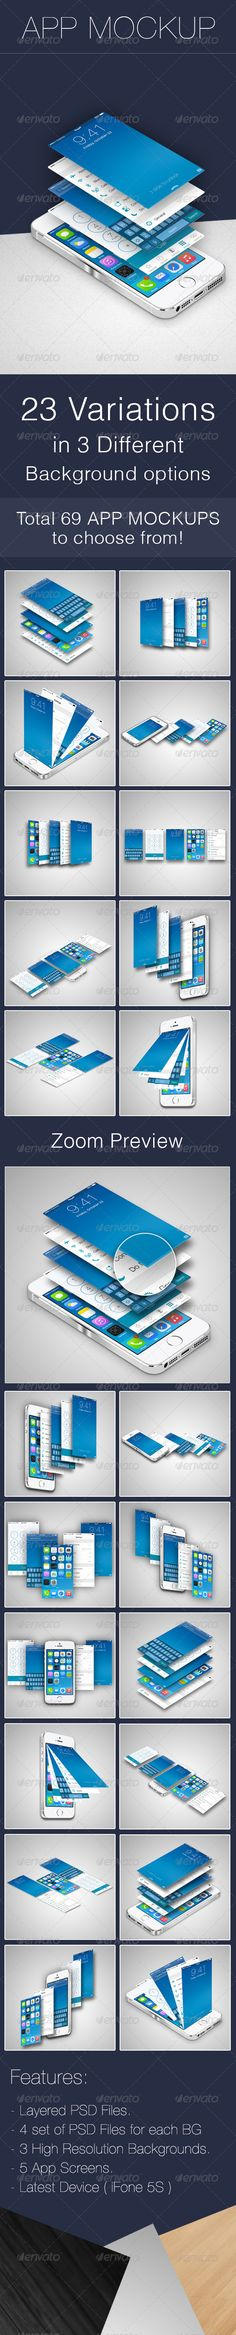 5S App Screen Mockup App Mockups — Photoshop PSD #iOS7 #mockup • Available here → https://graphicriver.net/item/5s-app-screen-mockup-app-mockups/5988063?ref=pxcr